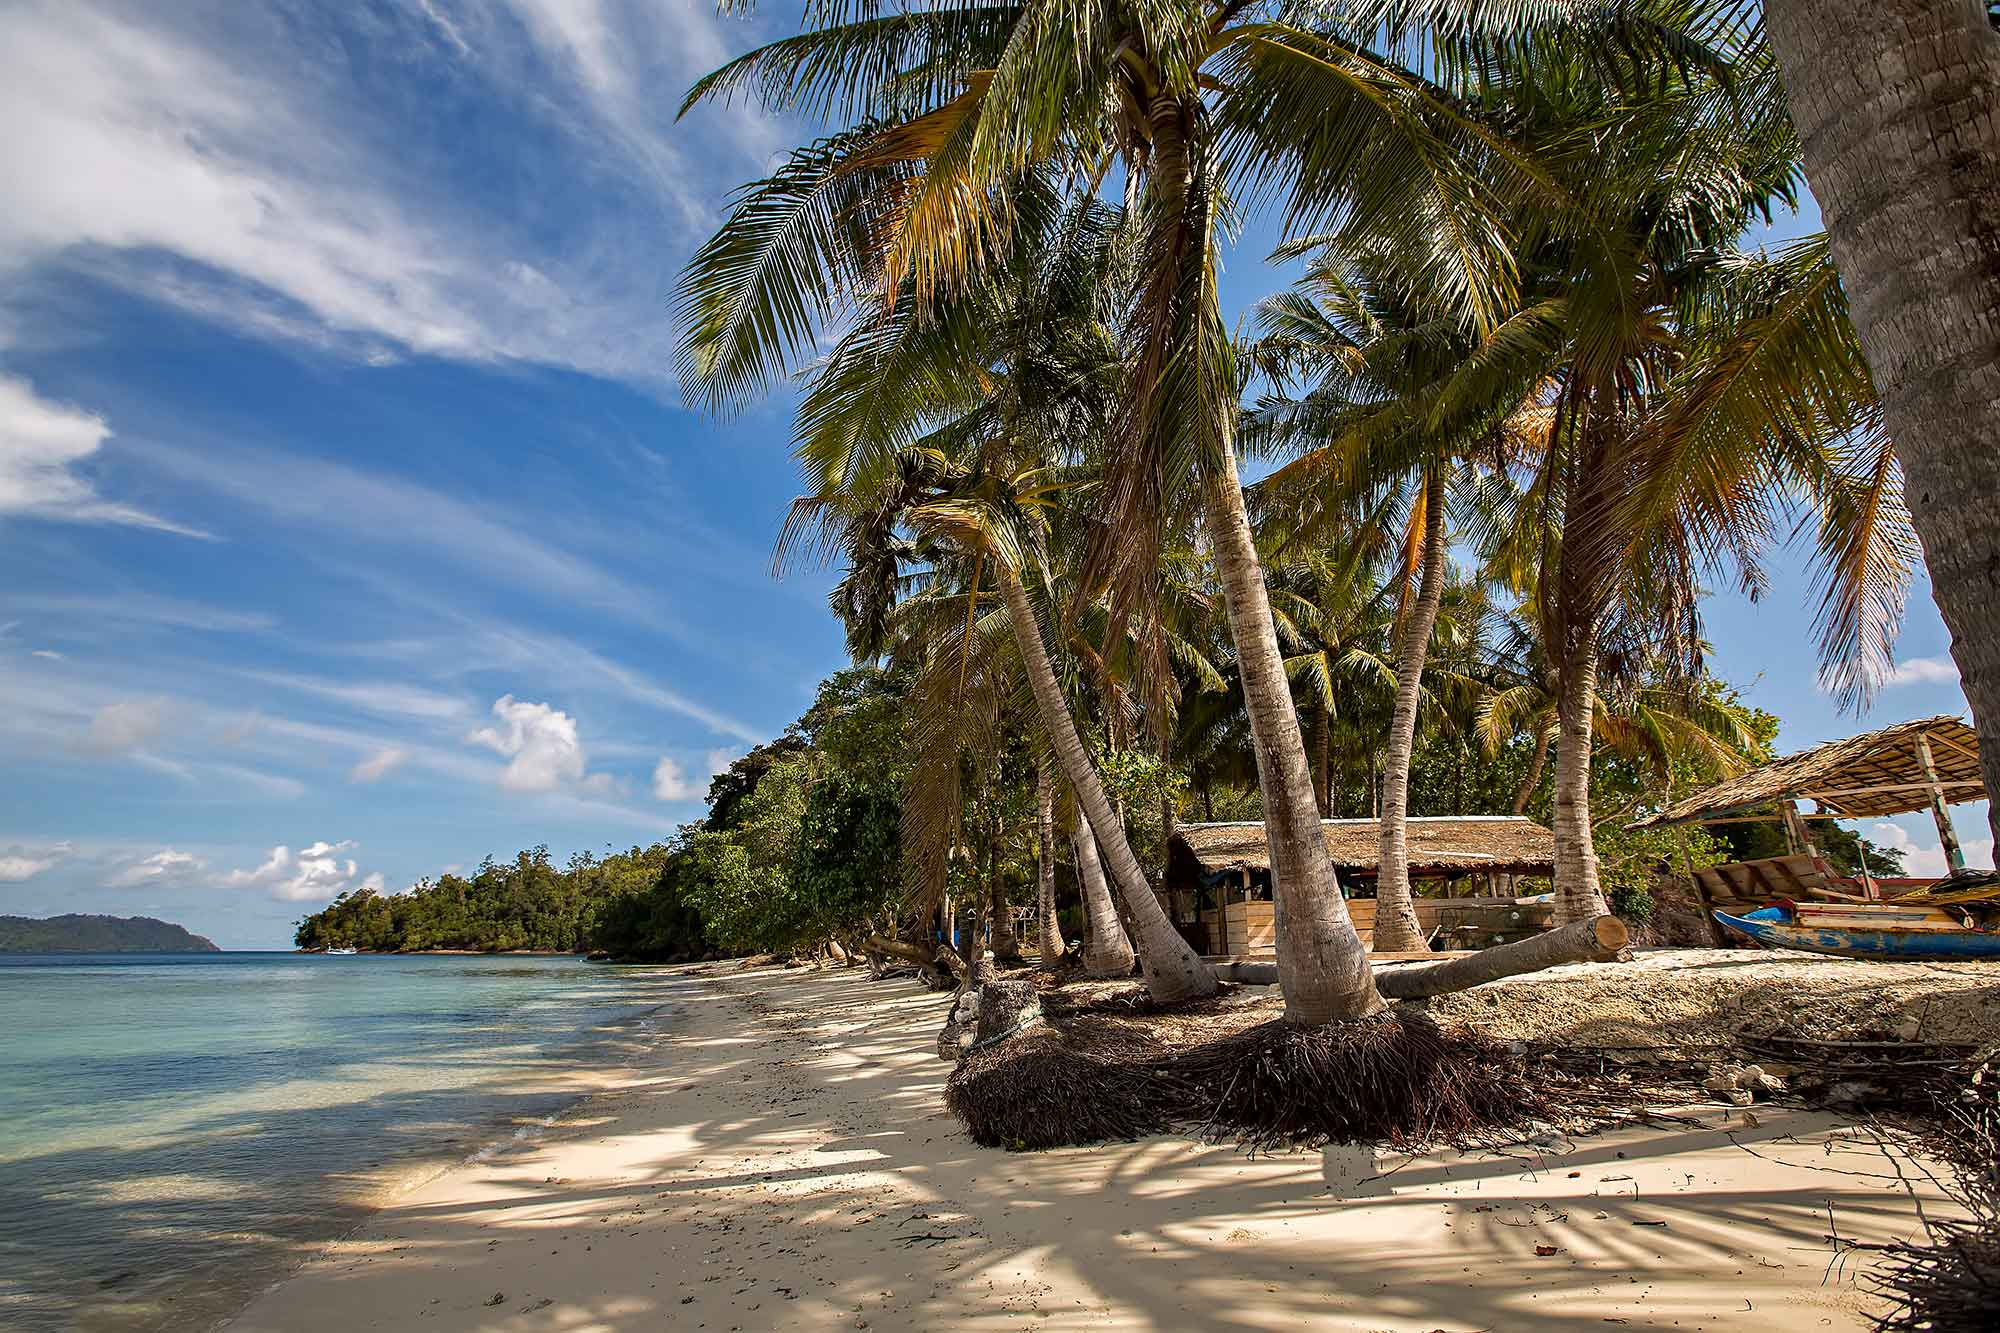 Beach paradise of the Mentawai Islands in West Sumatra, Indonesia. © Ulli Maier & Nisa Maier